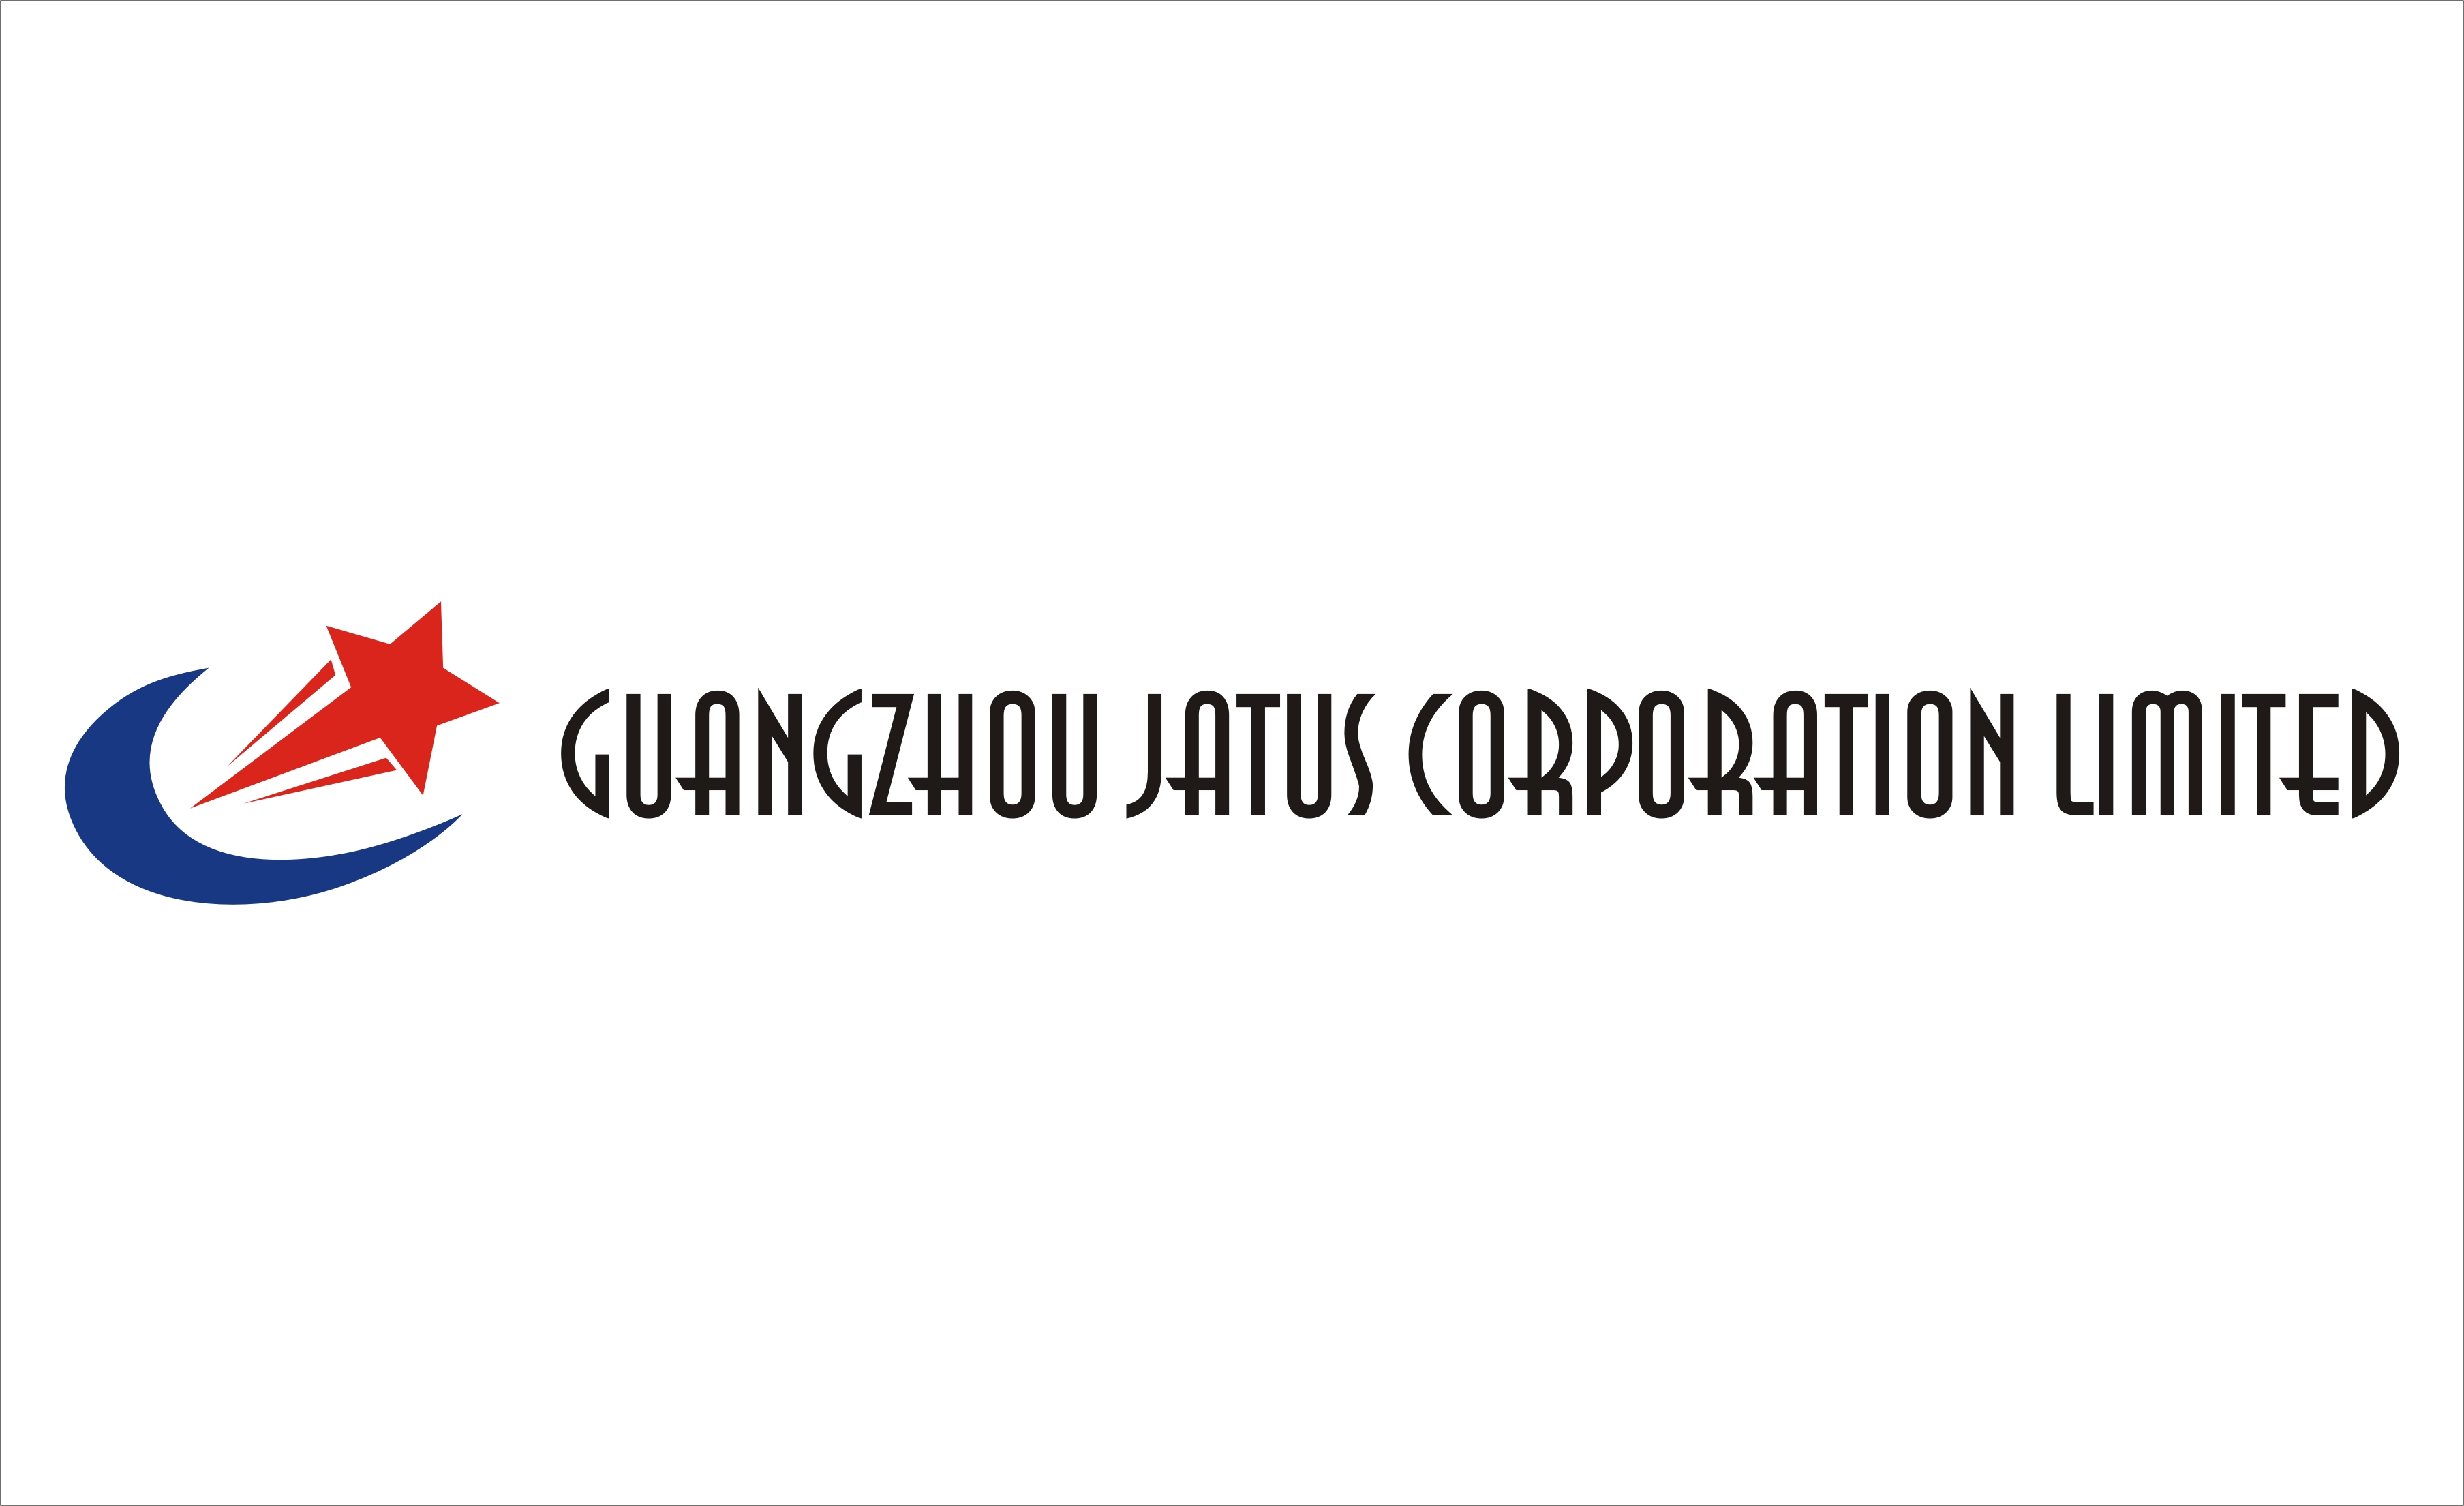 Guangzhou Jatus Corporation Limited